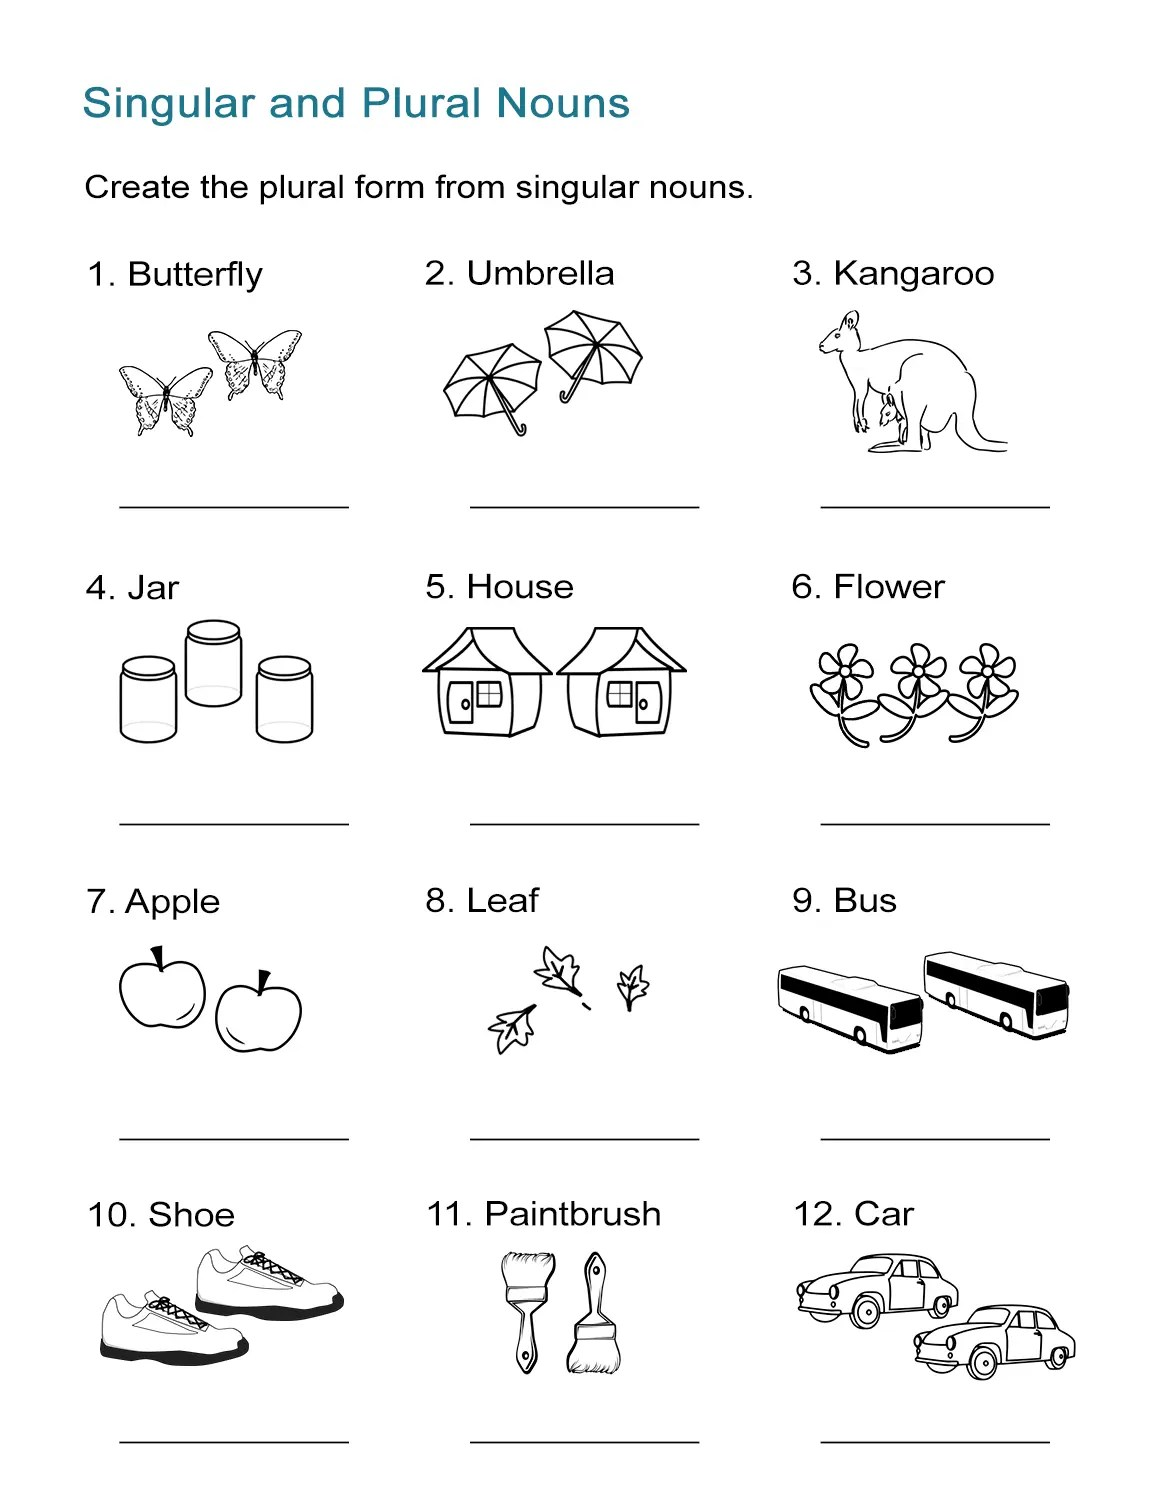 Leaves Free Singular And Plural Nouns Worksheet